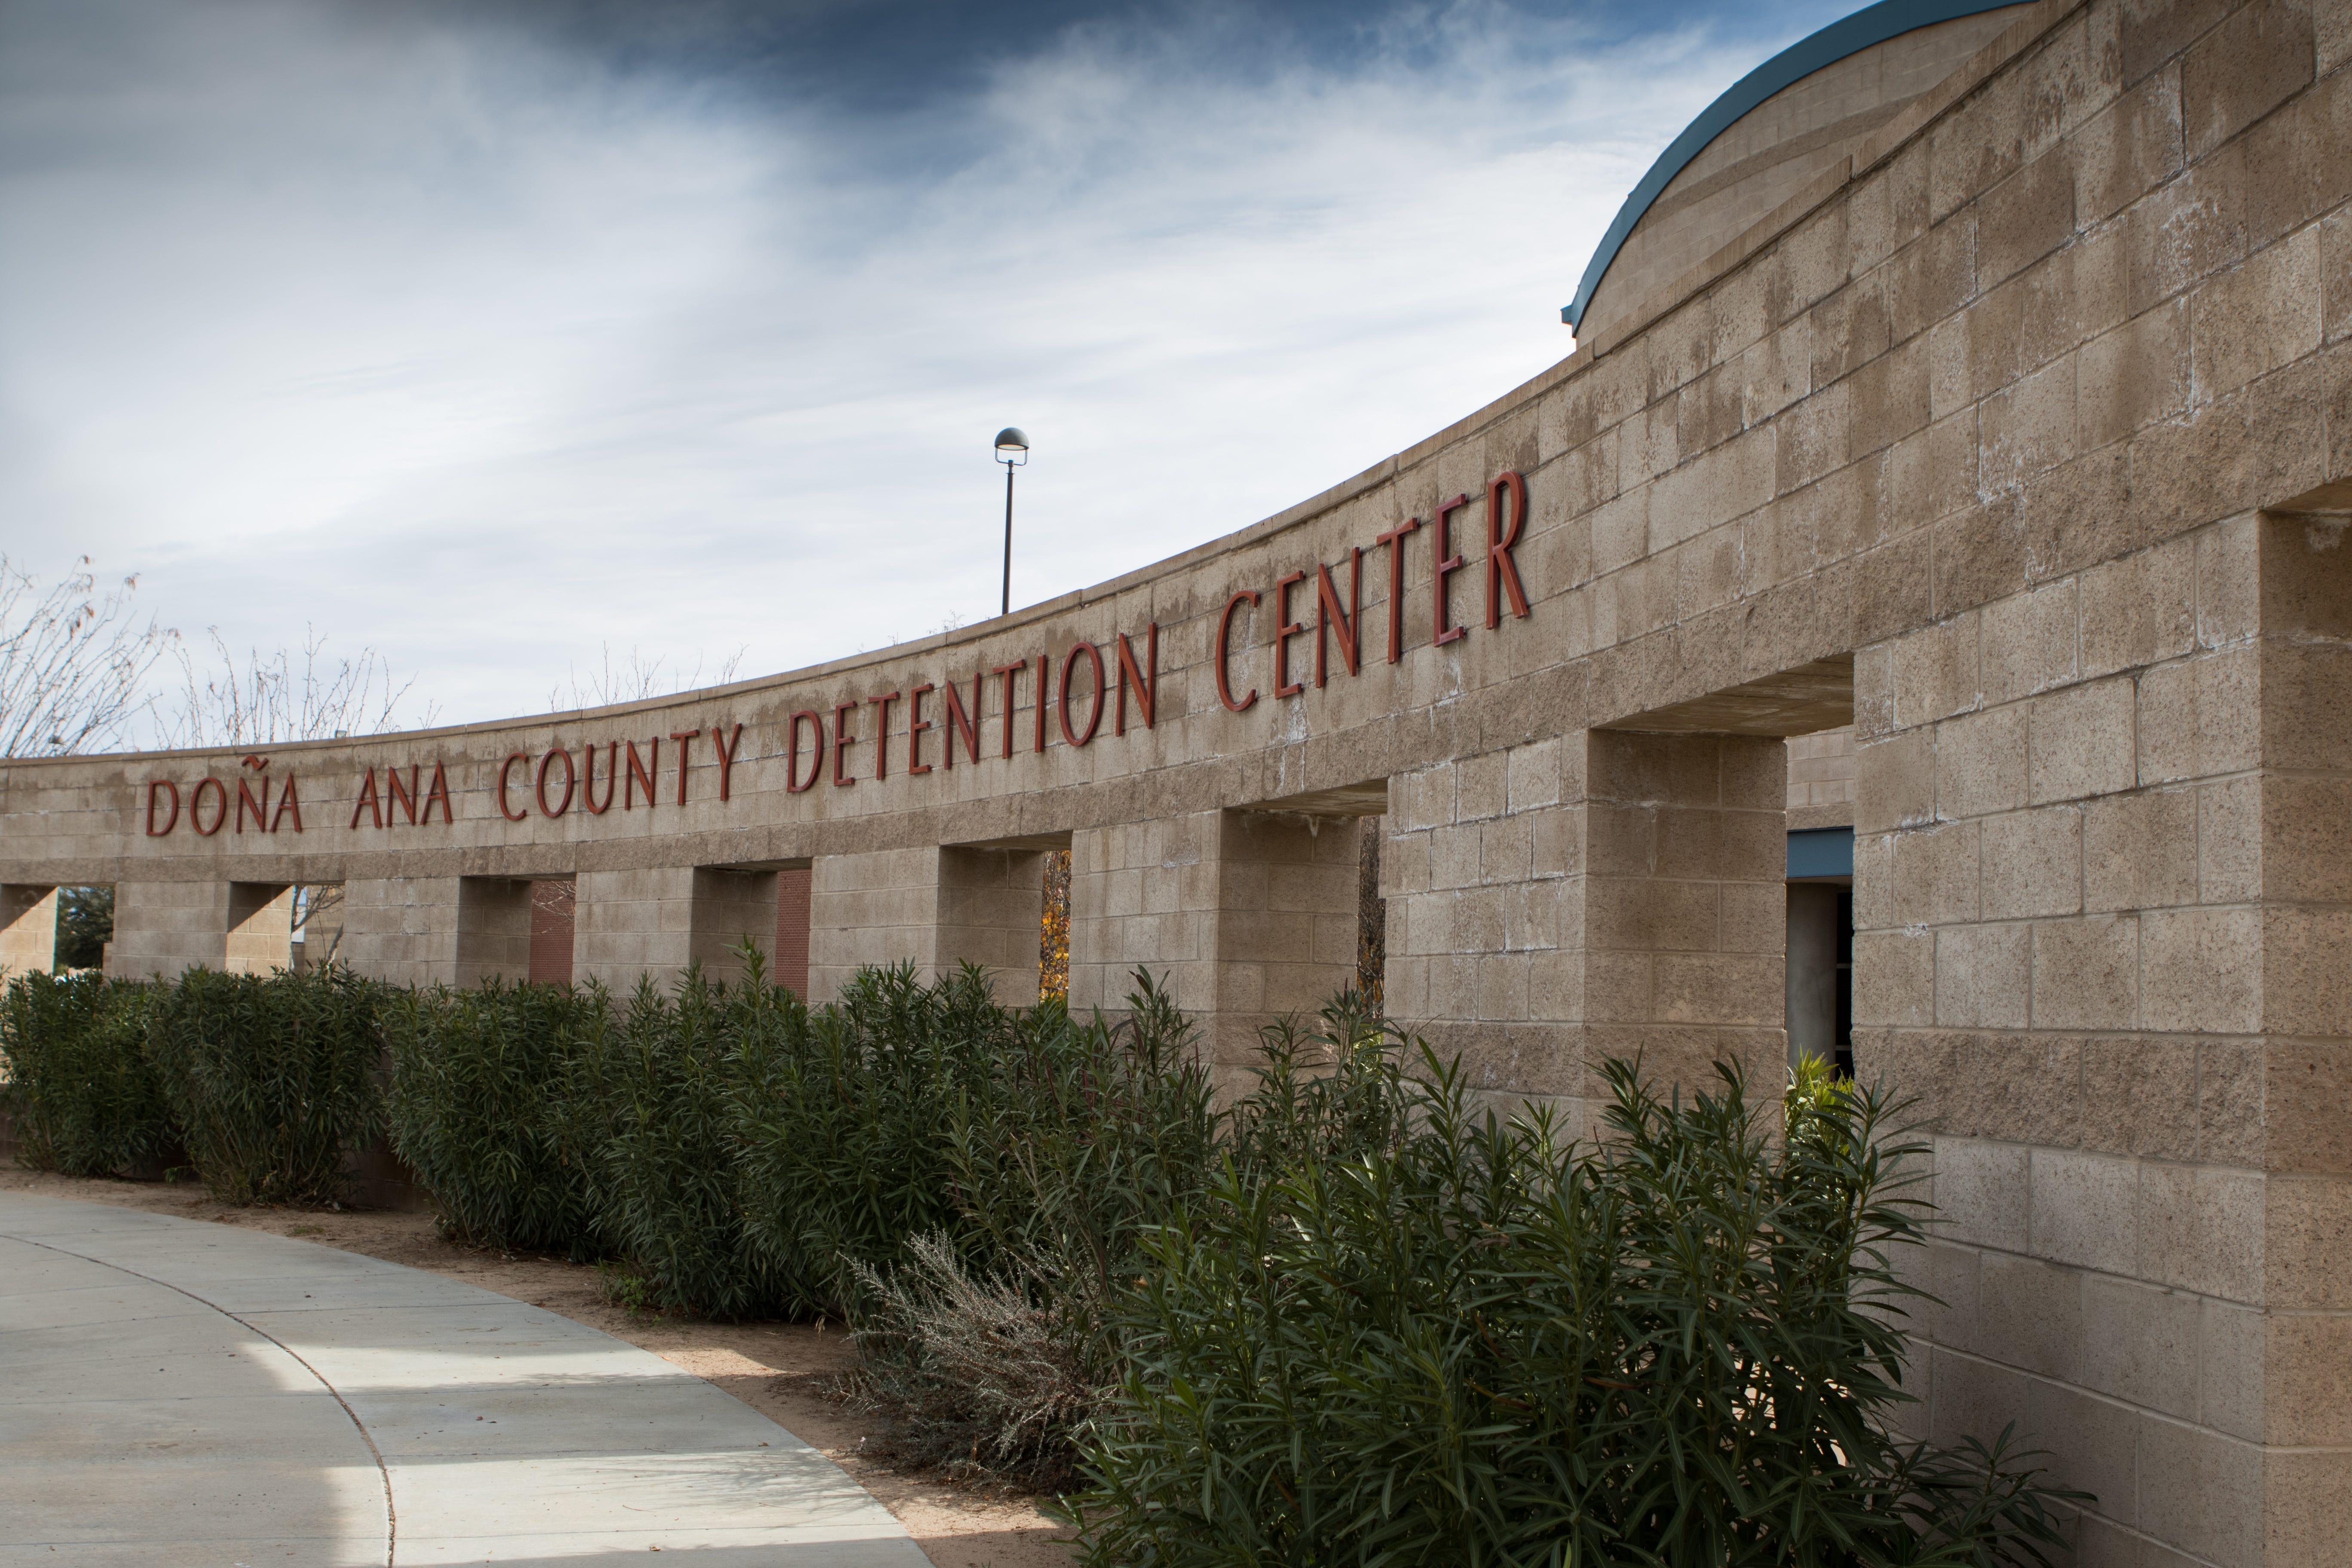 Krome detention center inmate search – USPosts